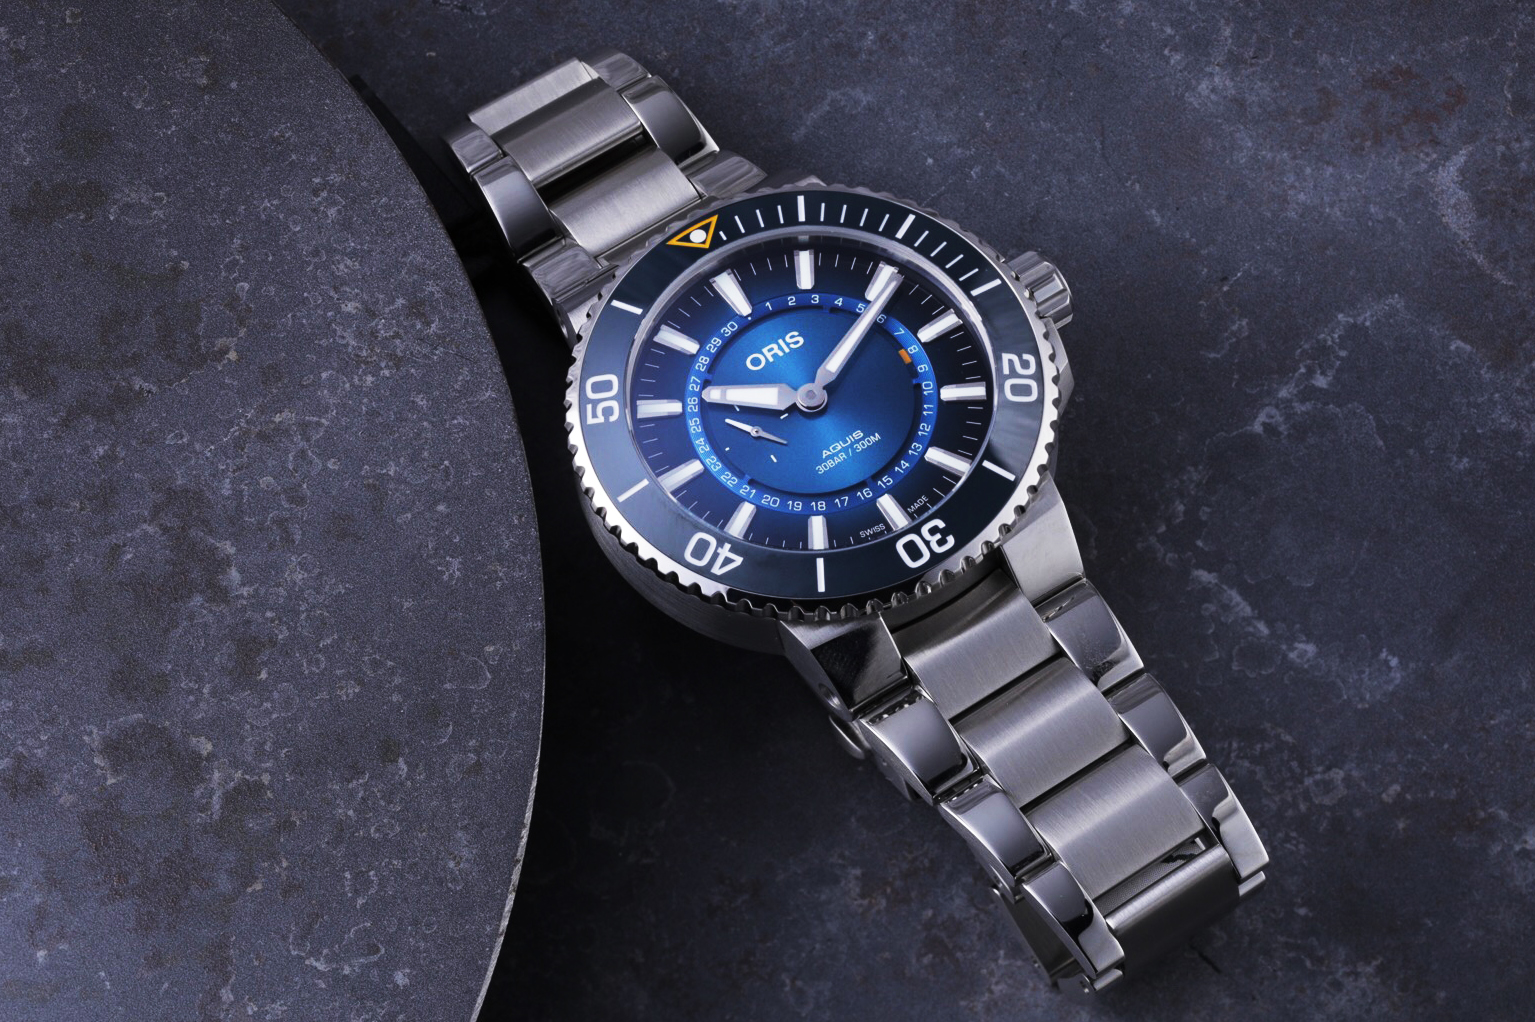 Revolution shines a spotlight on ocean conservation on World Oceans Day with Oris. Shown here is the Oris Aquis Great Barrier Reef III limited edition supports the Reef Restoration Foundation. Image shot by Sidney Teo for Revolution.